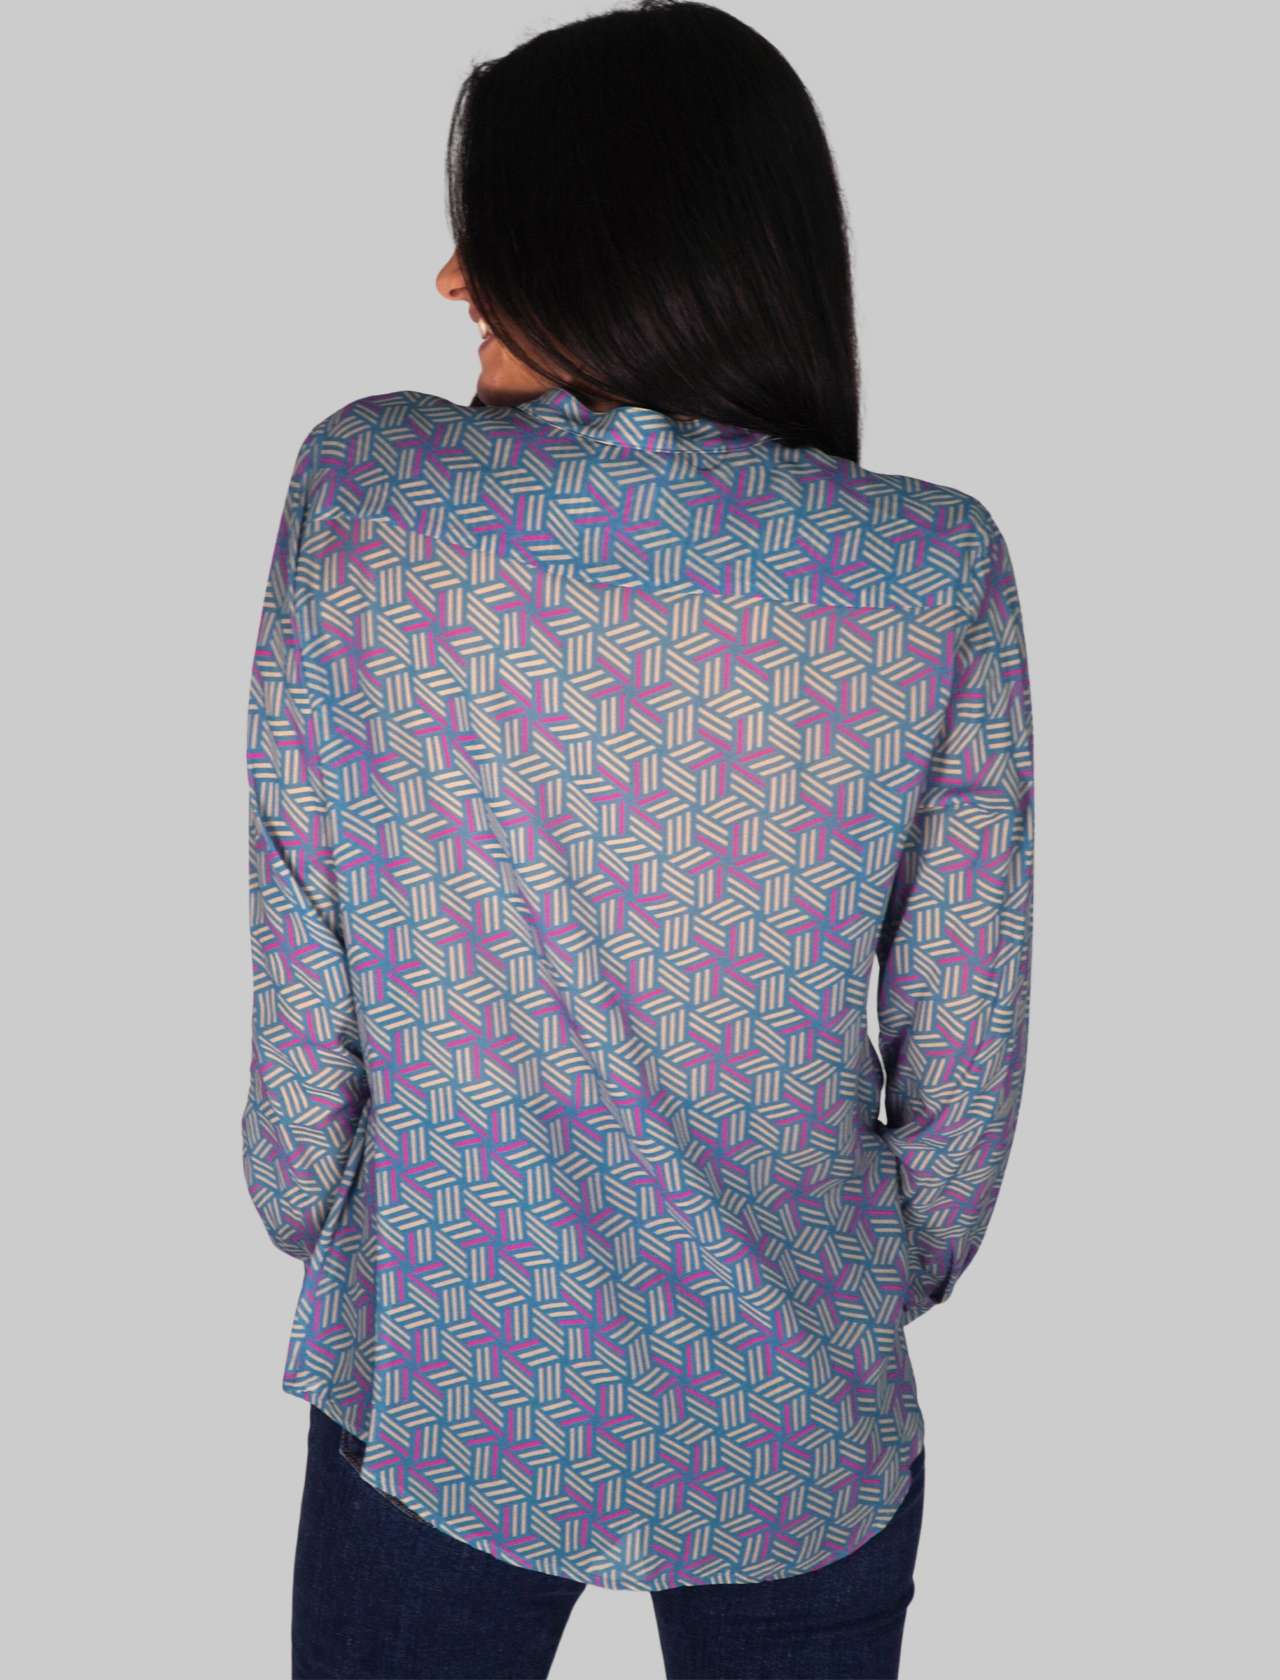 Women's Clothing Blue Patterned Shirt with Contrast Buttons Mercì | Shirts and tops | MC195002